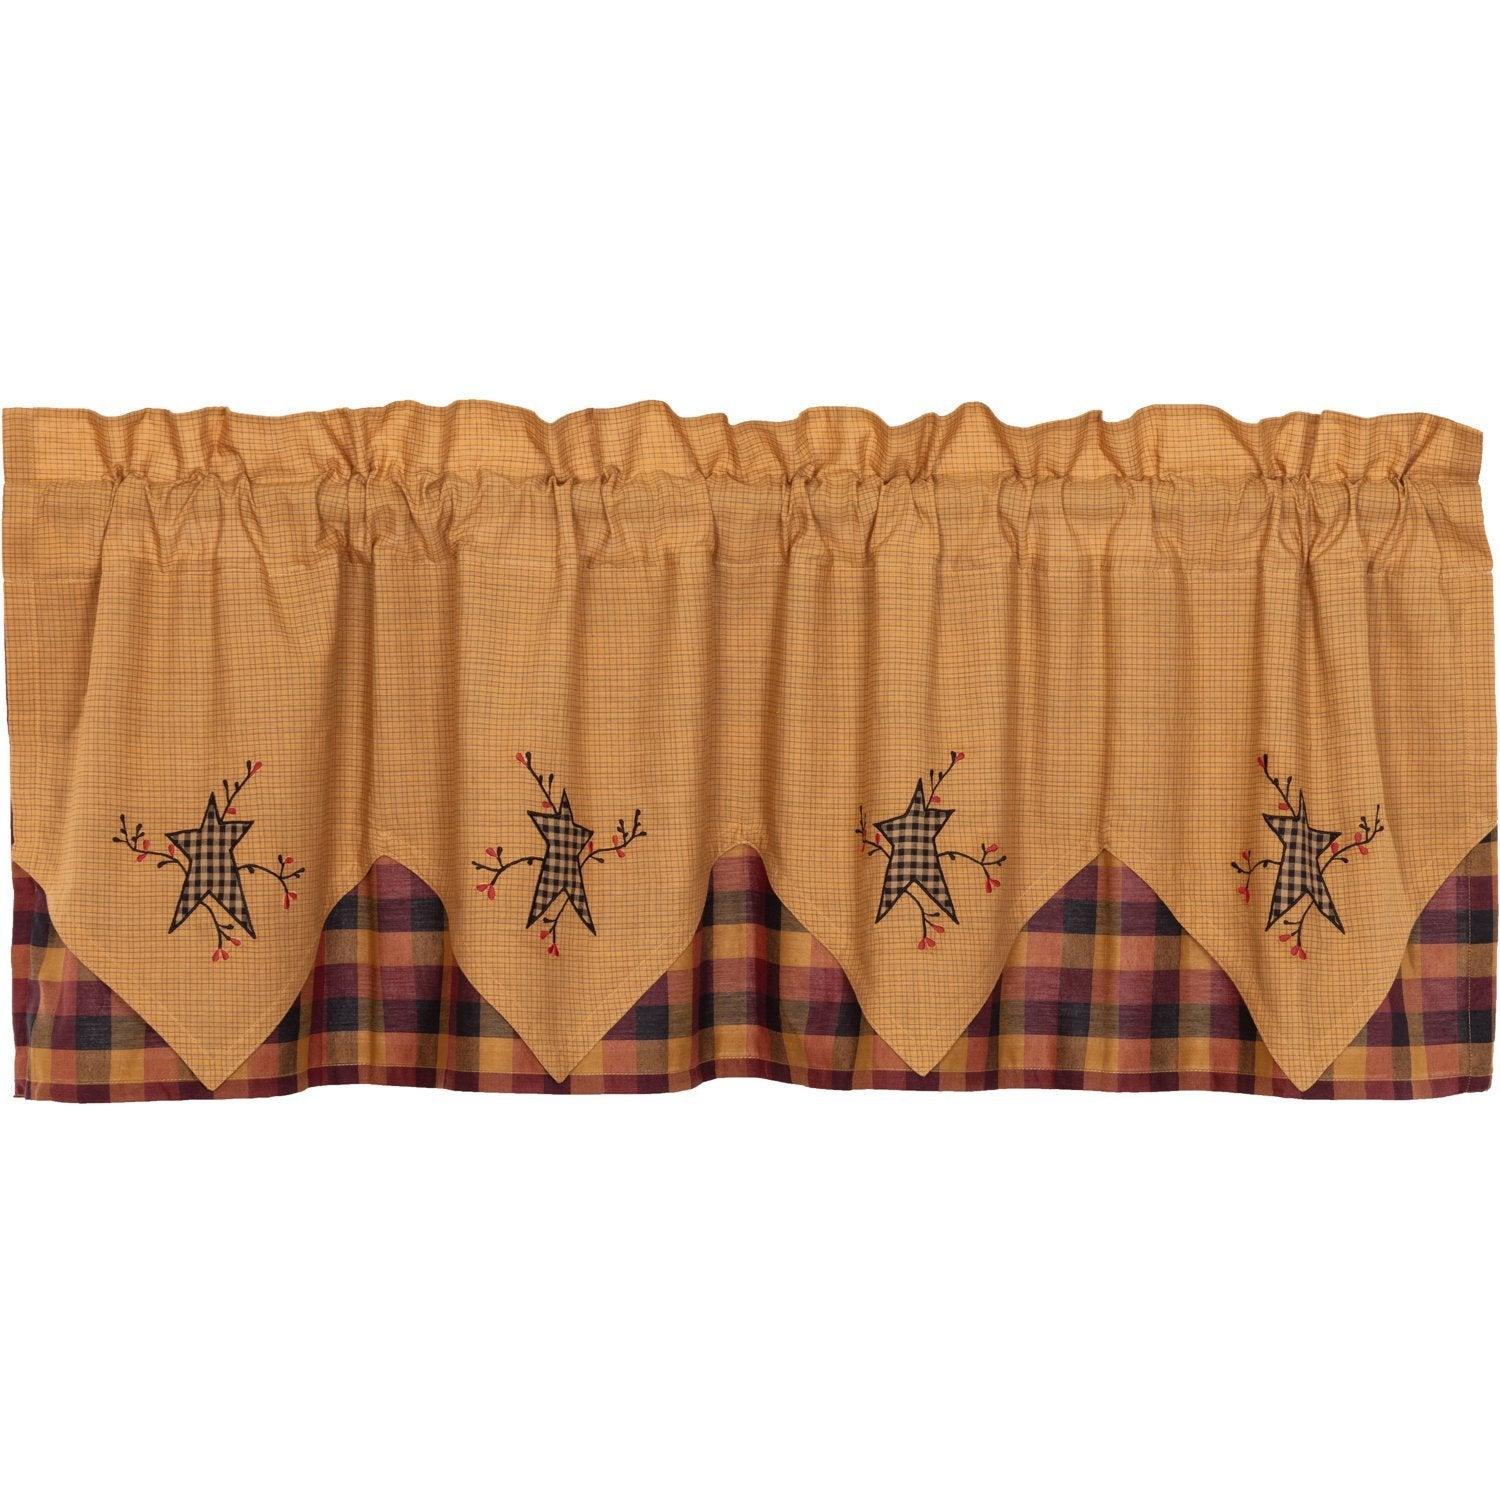 Heritage Farms Primitive Star and Pip Valance Layered.